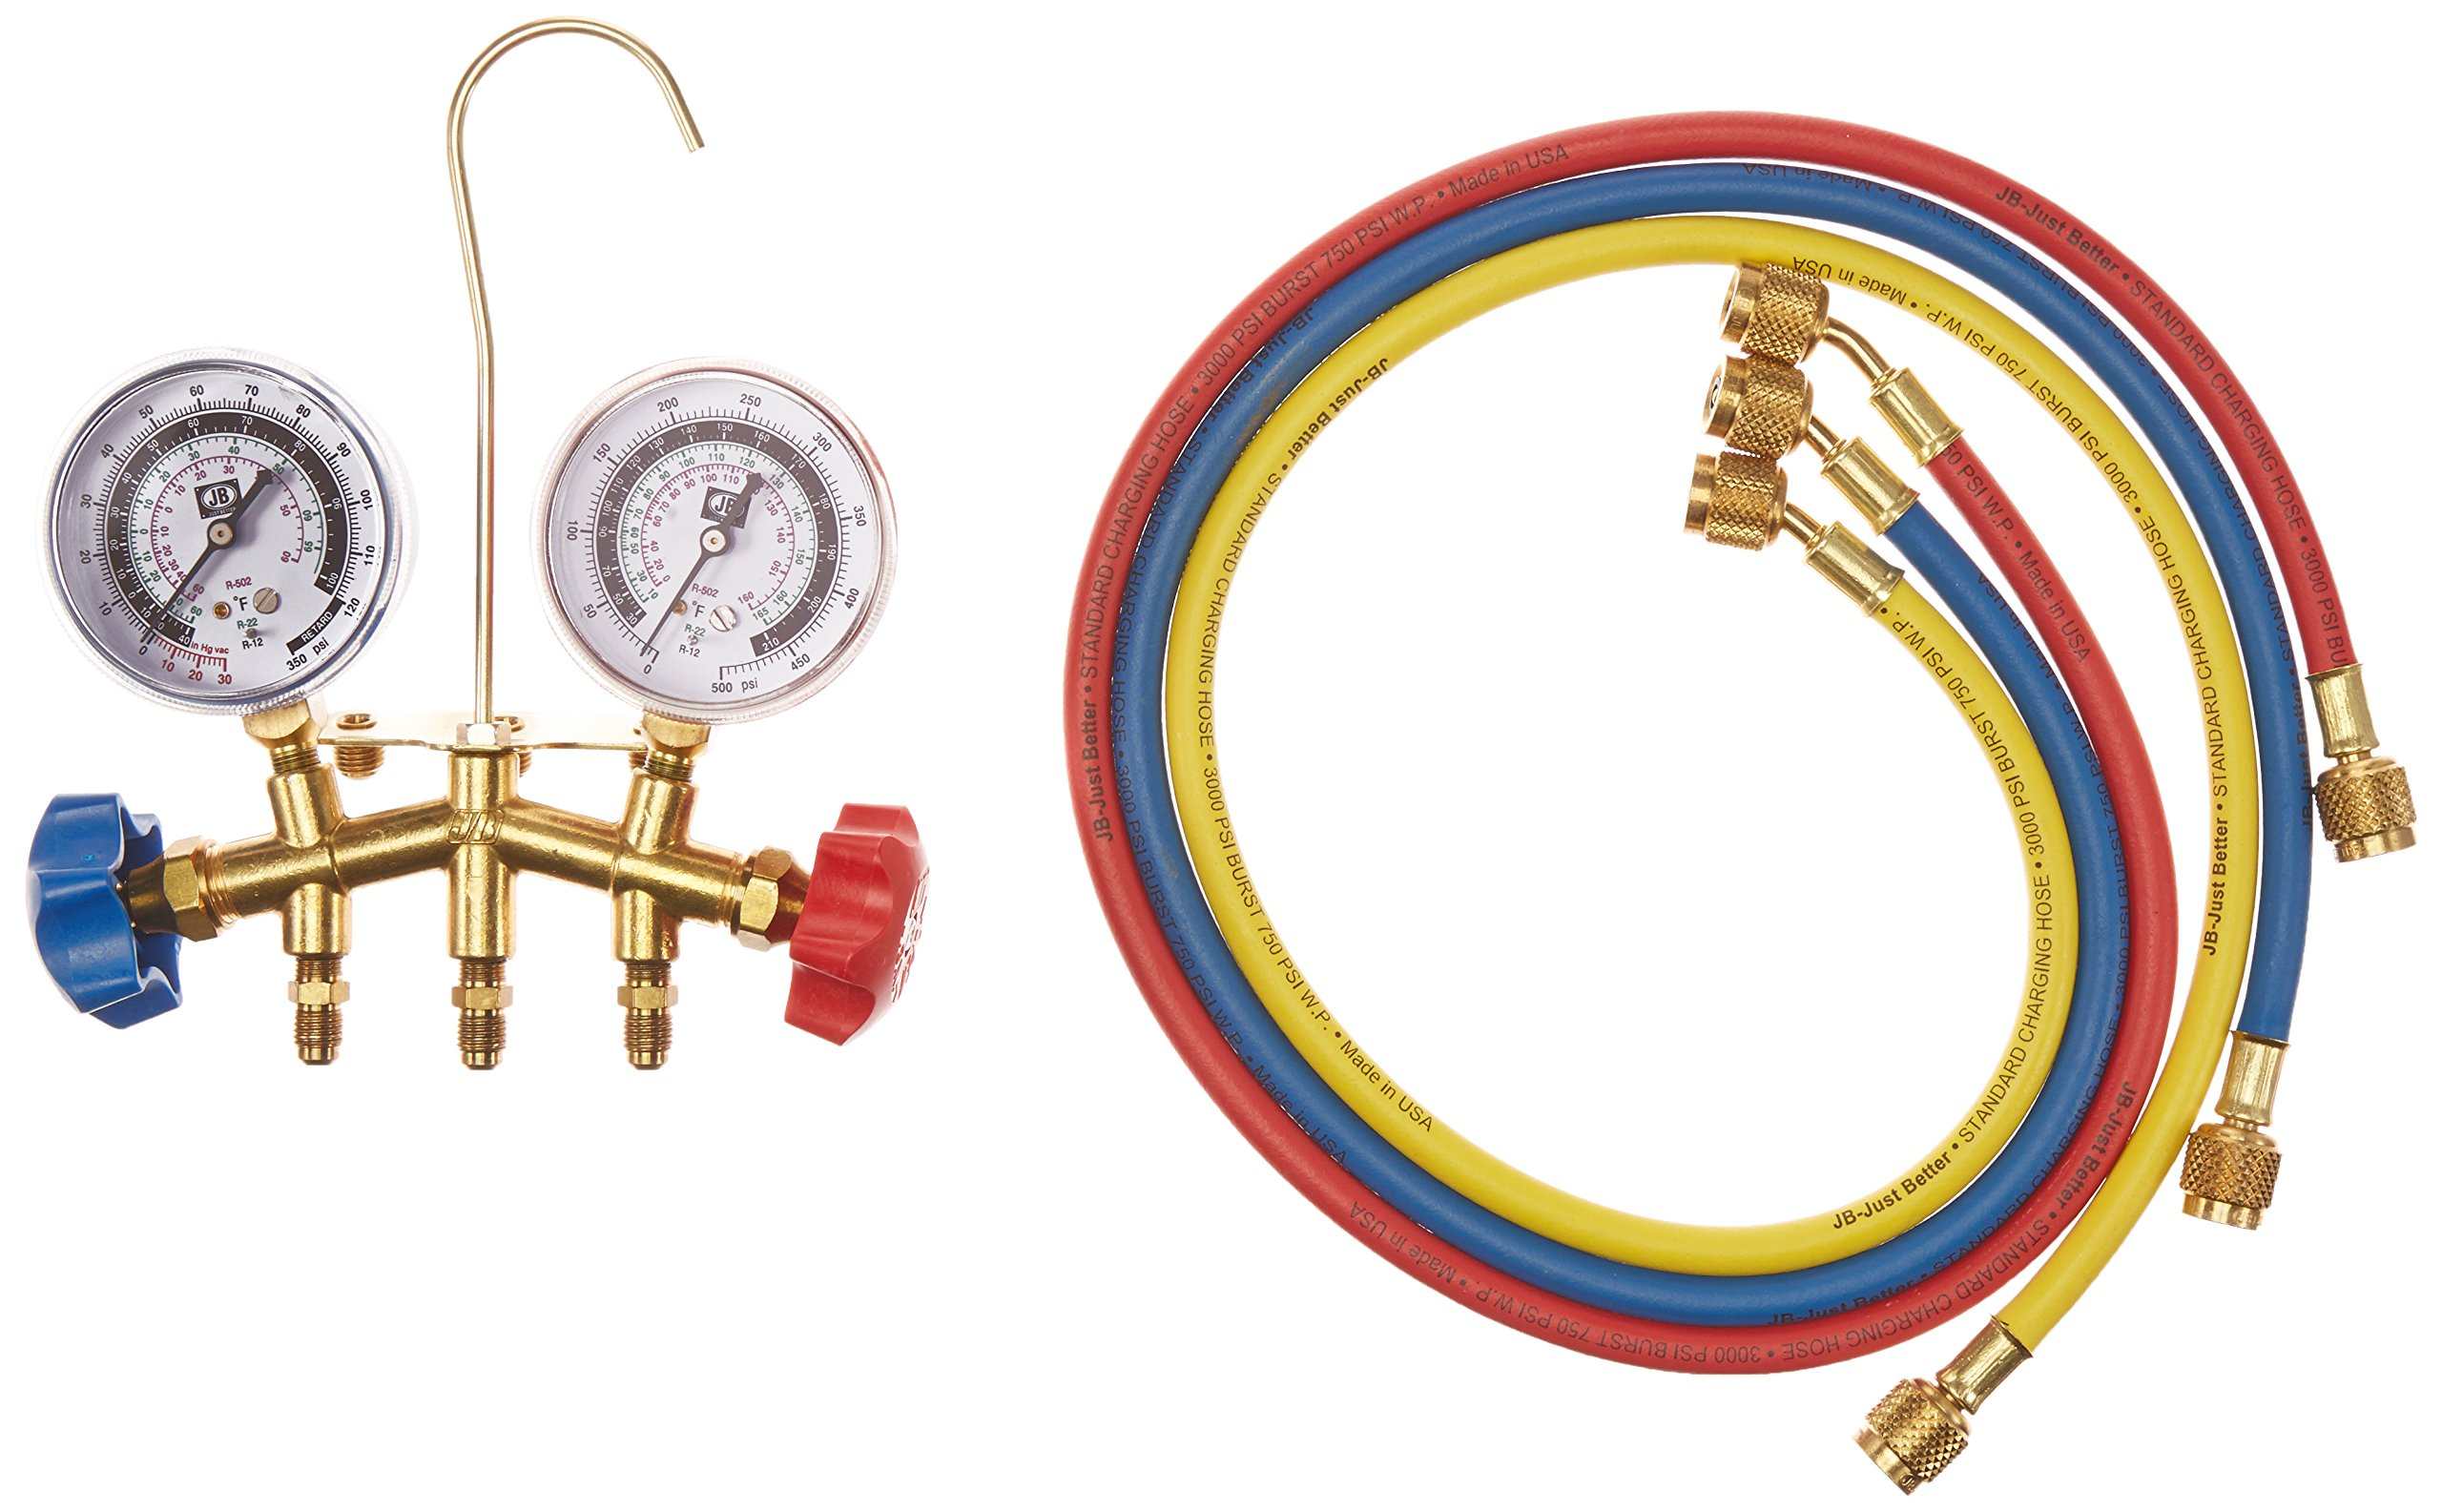 Jb Industries GIDDS-131243 Jb Industries Brass 2-Valve Charging Manifold Assembly with 36'' Standard Hoses